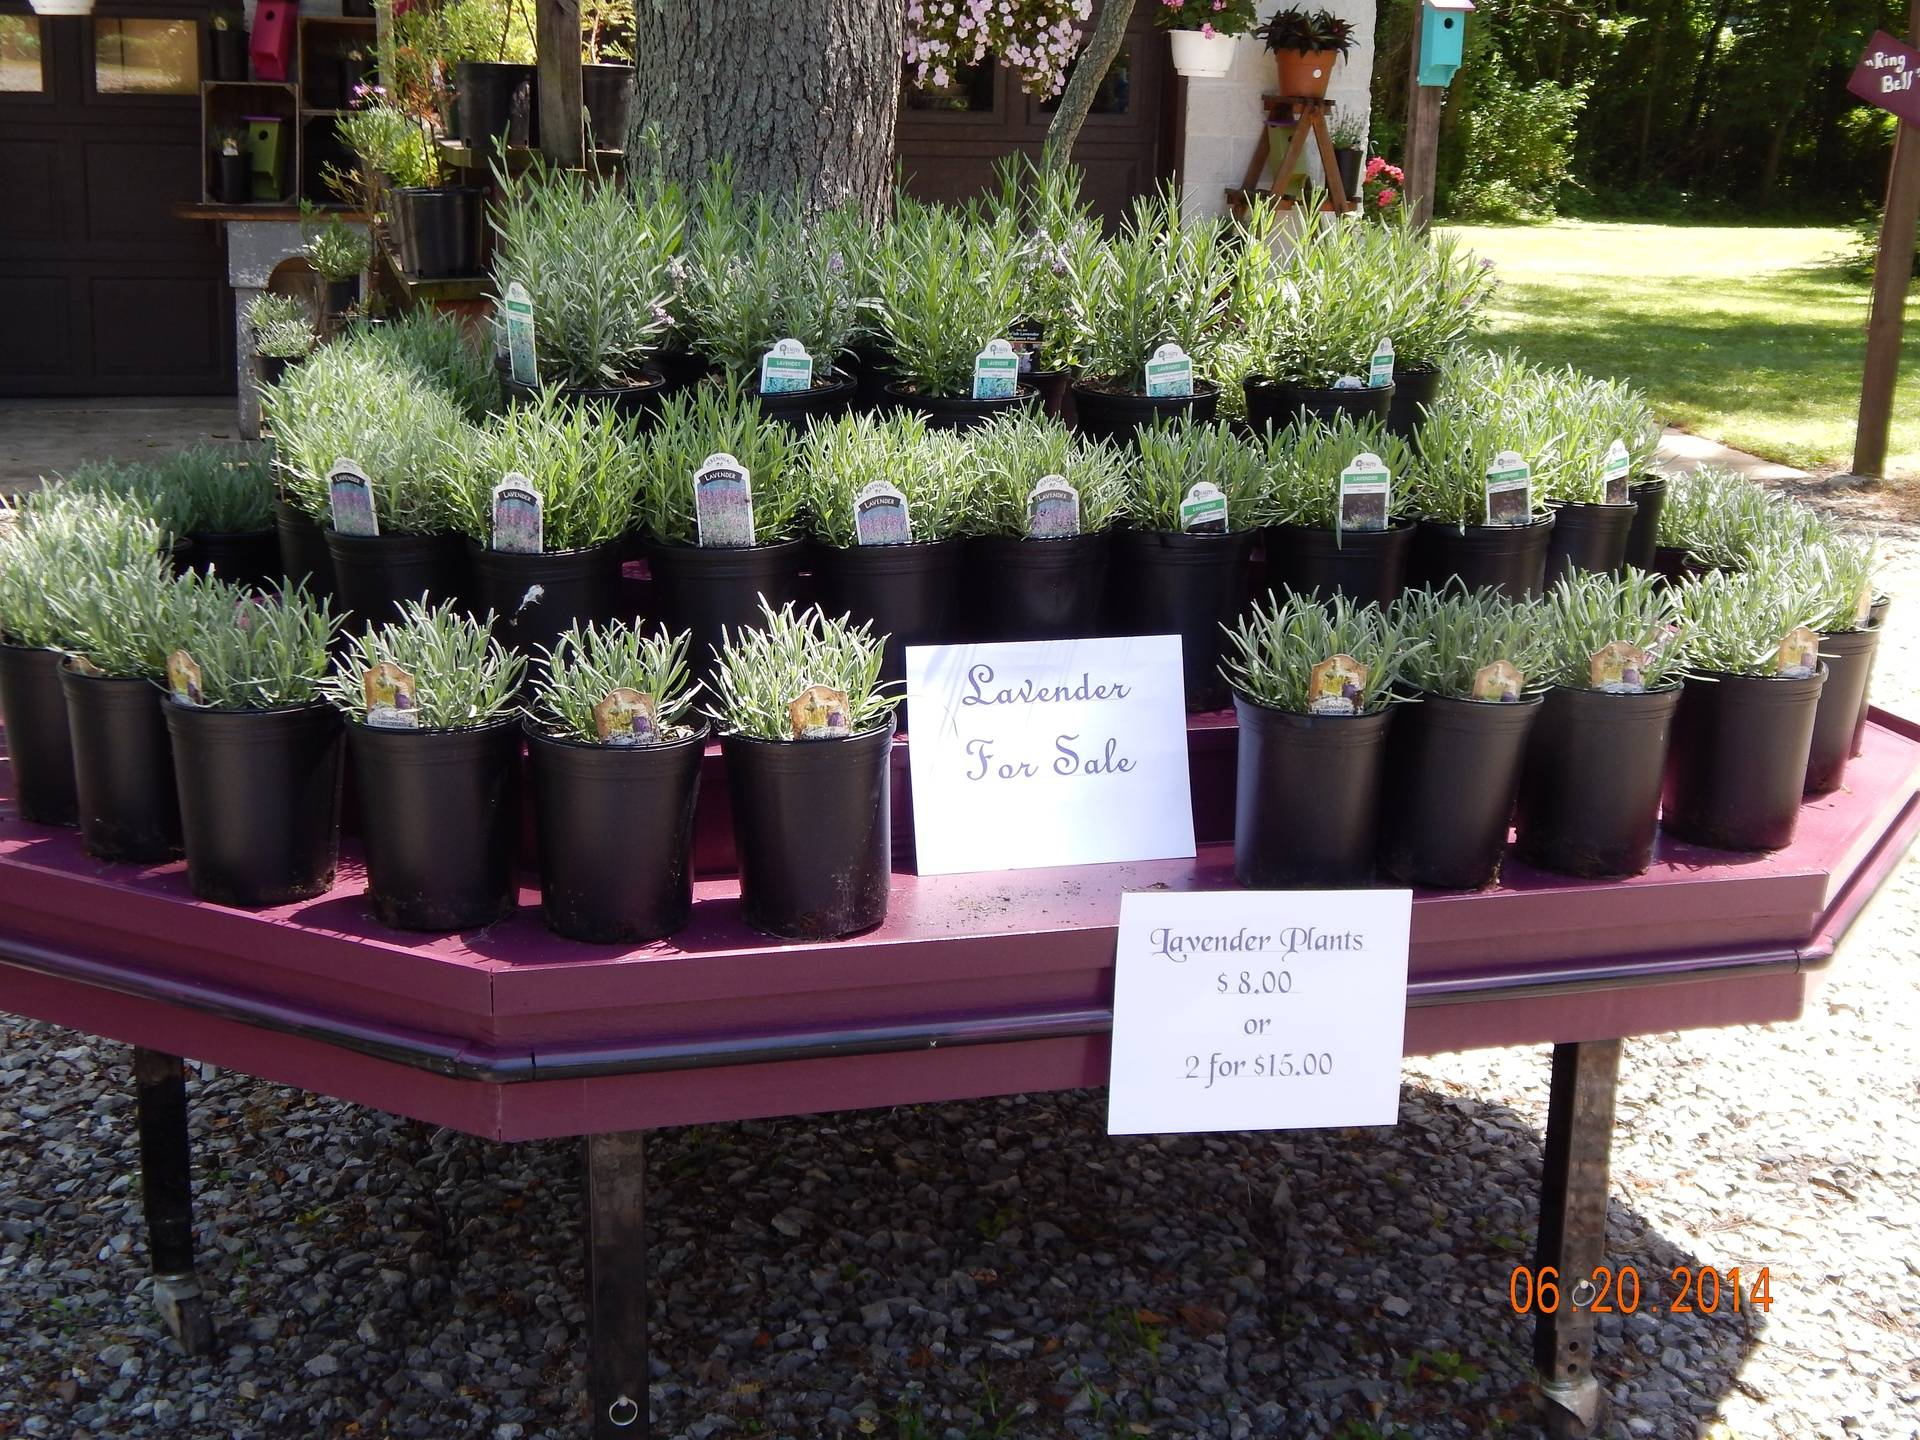 Lavenderplants for sale